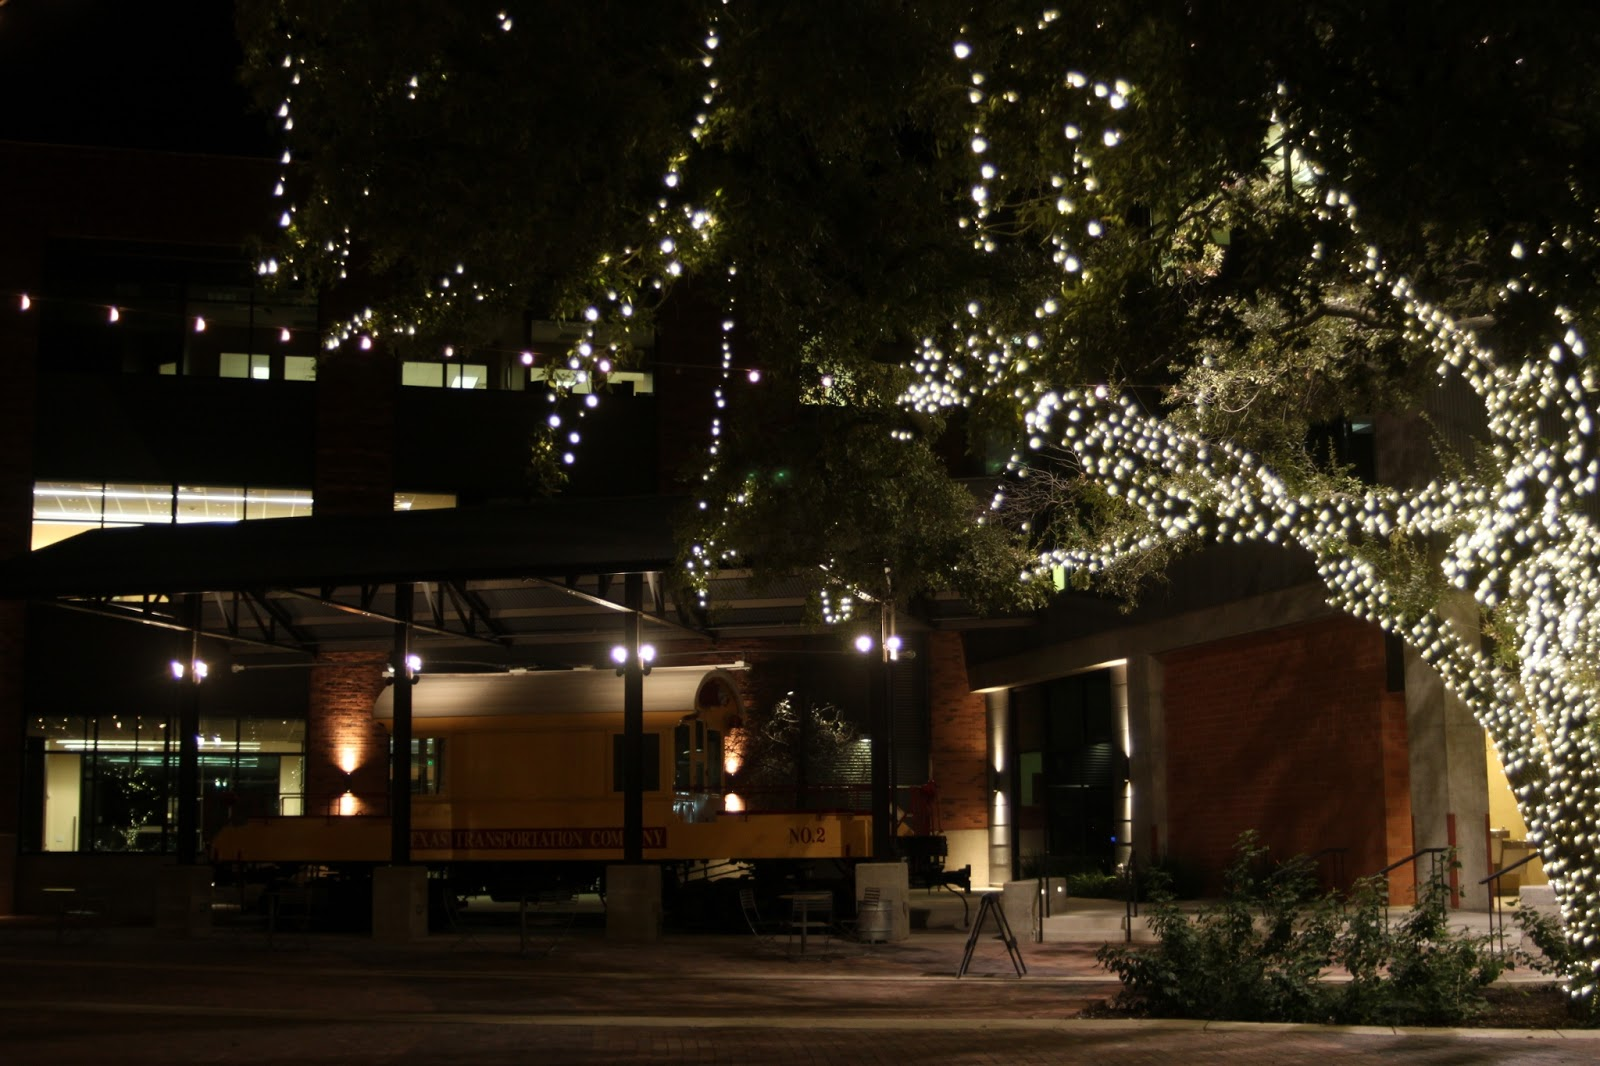 another view of the courtyard with a train car on display - Pearl Christmas Lights